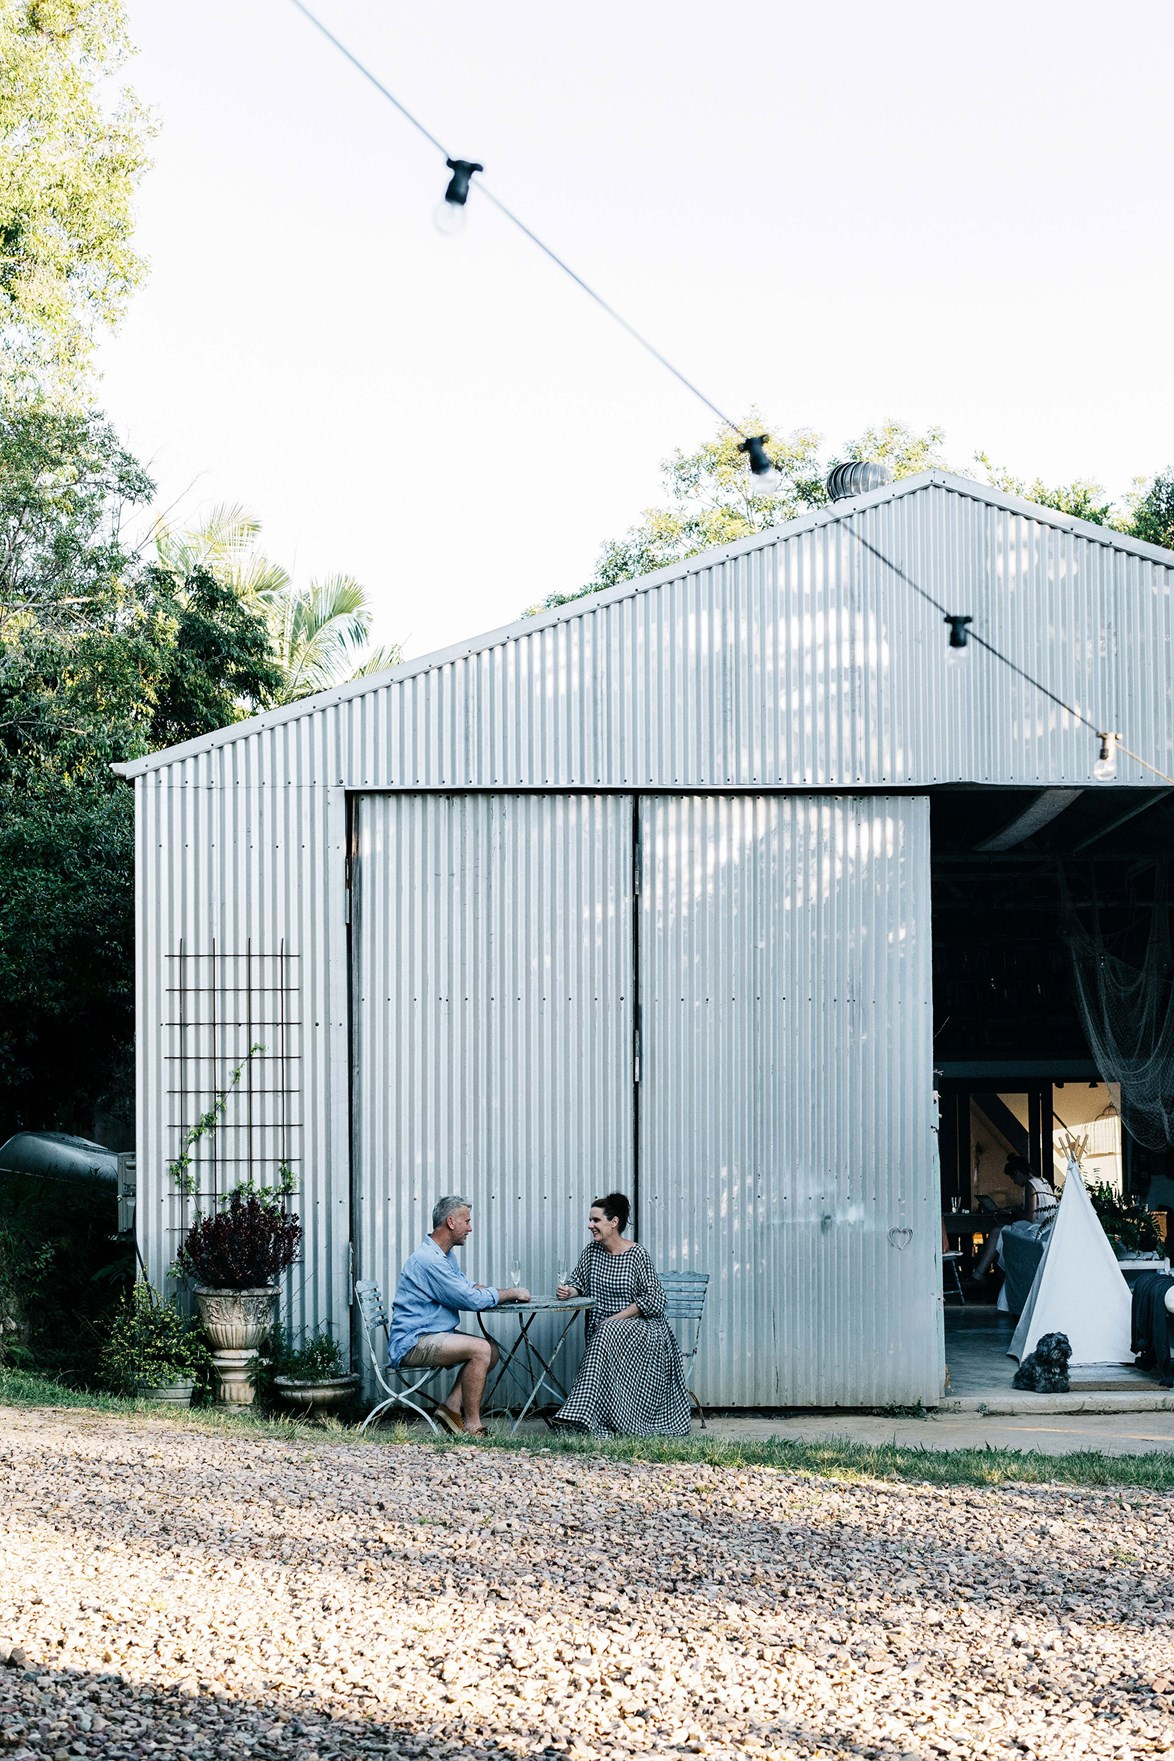 "After purchasing a property in the Sunshine Coast hinterland, a couple set about [converting an existing shed](https://www.homestolove.com.au/shed-house-australia-20185|target=""_blank"") into a temporarily liveable space as they drew up plans for their dream home. But after a kitchen, bathroom and three bedrooms were added to the shed, fondly dubbed the 'shouse', the couple decided they probably didn't need to build a new home after all."